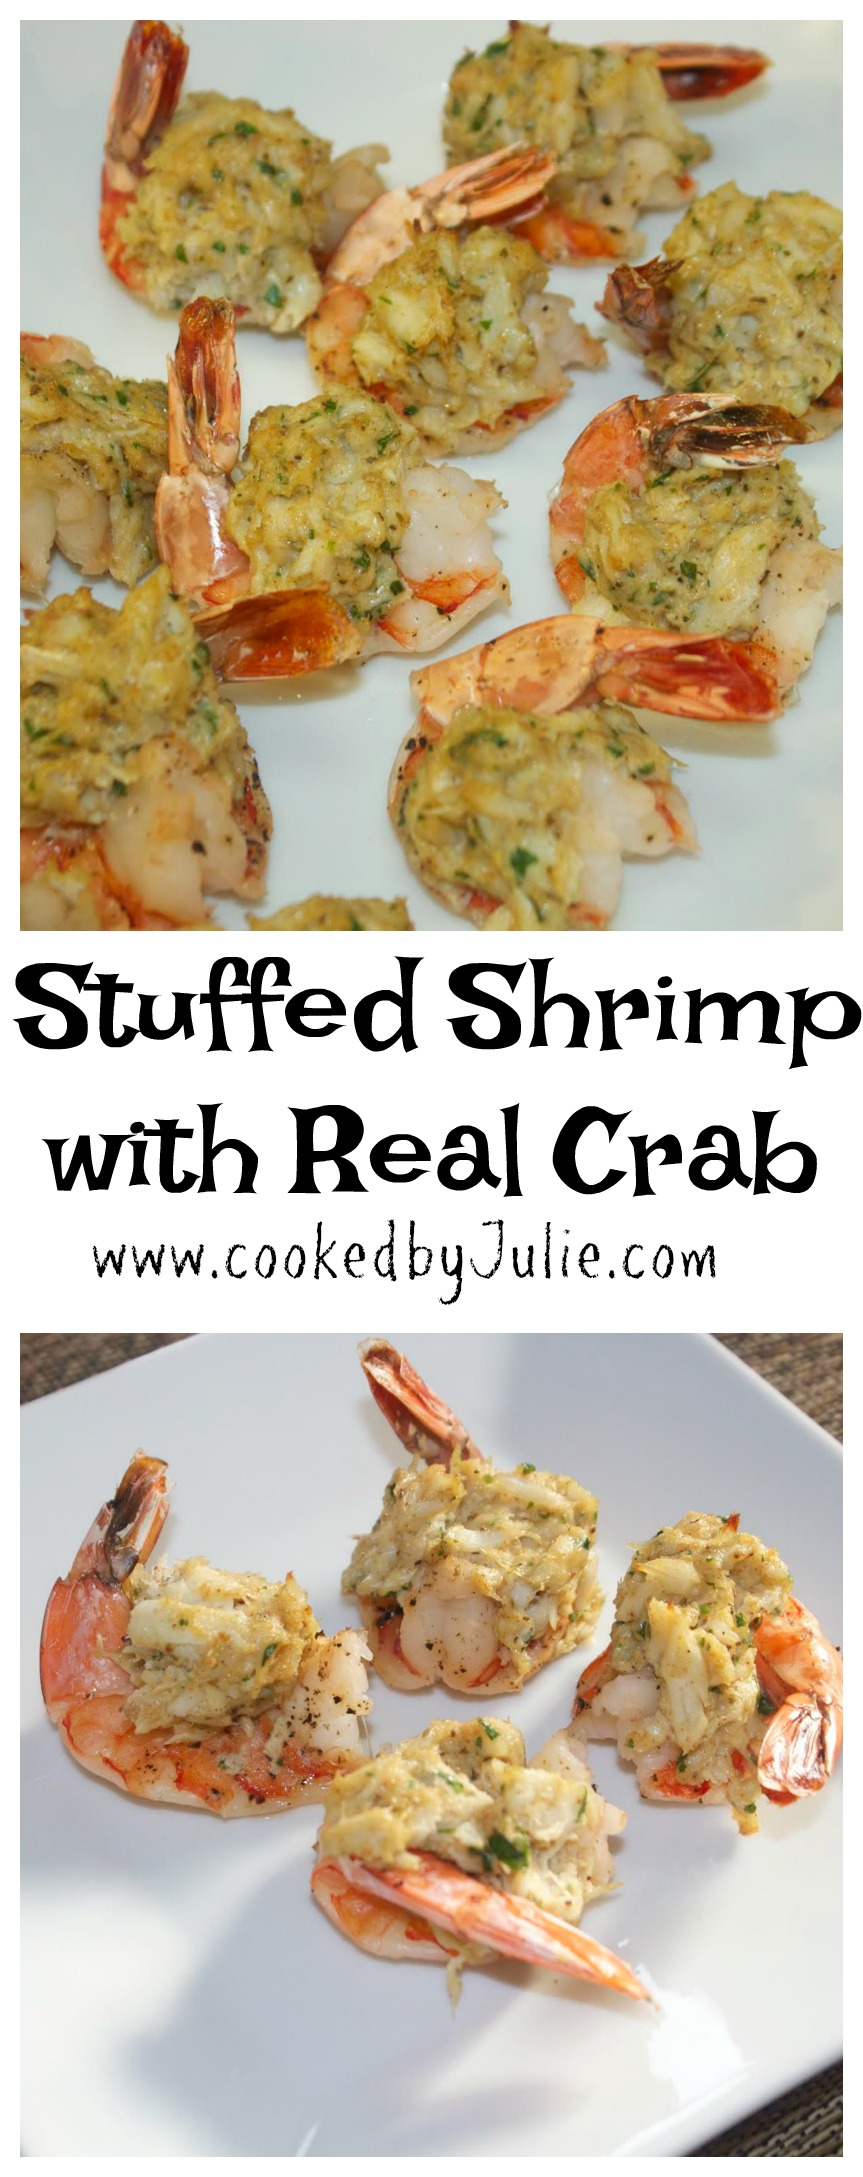 Try this stuff shrimp appetizer from Cooked by Julie